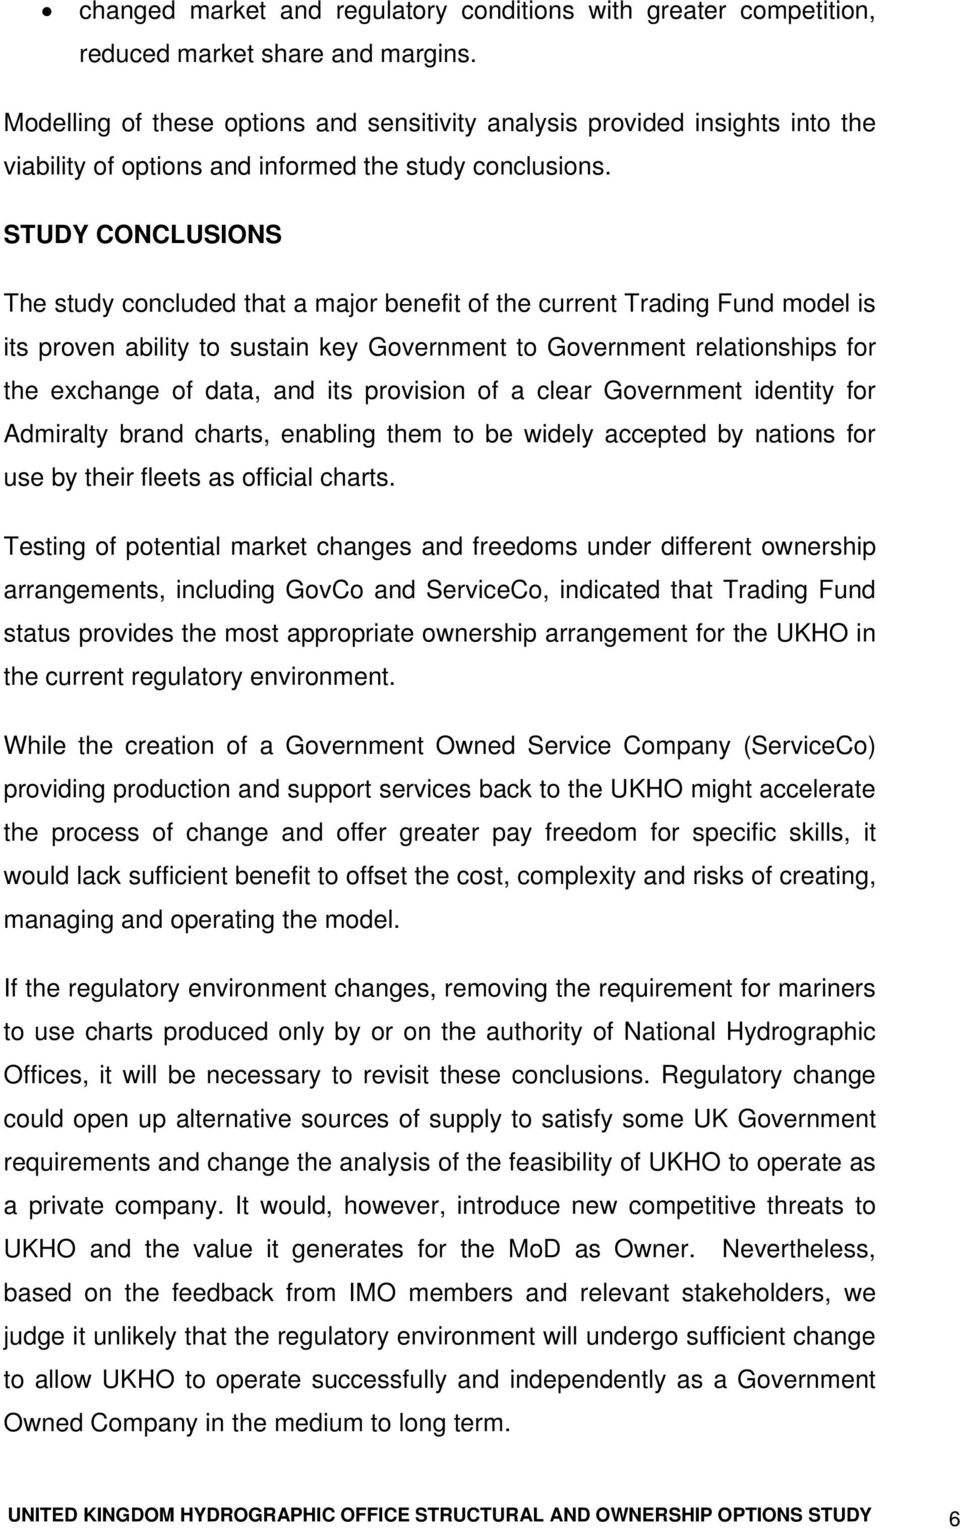 STUDY CONCLUSIONS The study concluded that a major benefit of the current Trading Fund model is its proven ability to sustain key Government to Government relationships for the exchange of data, and